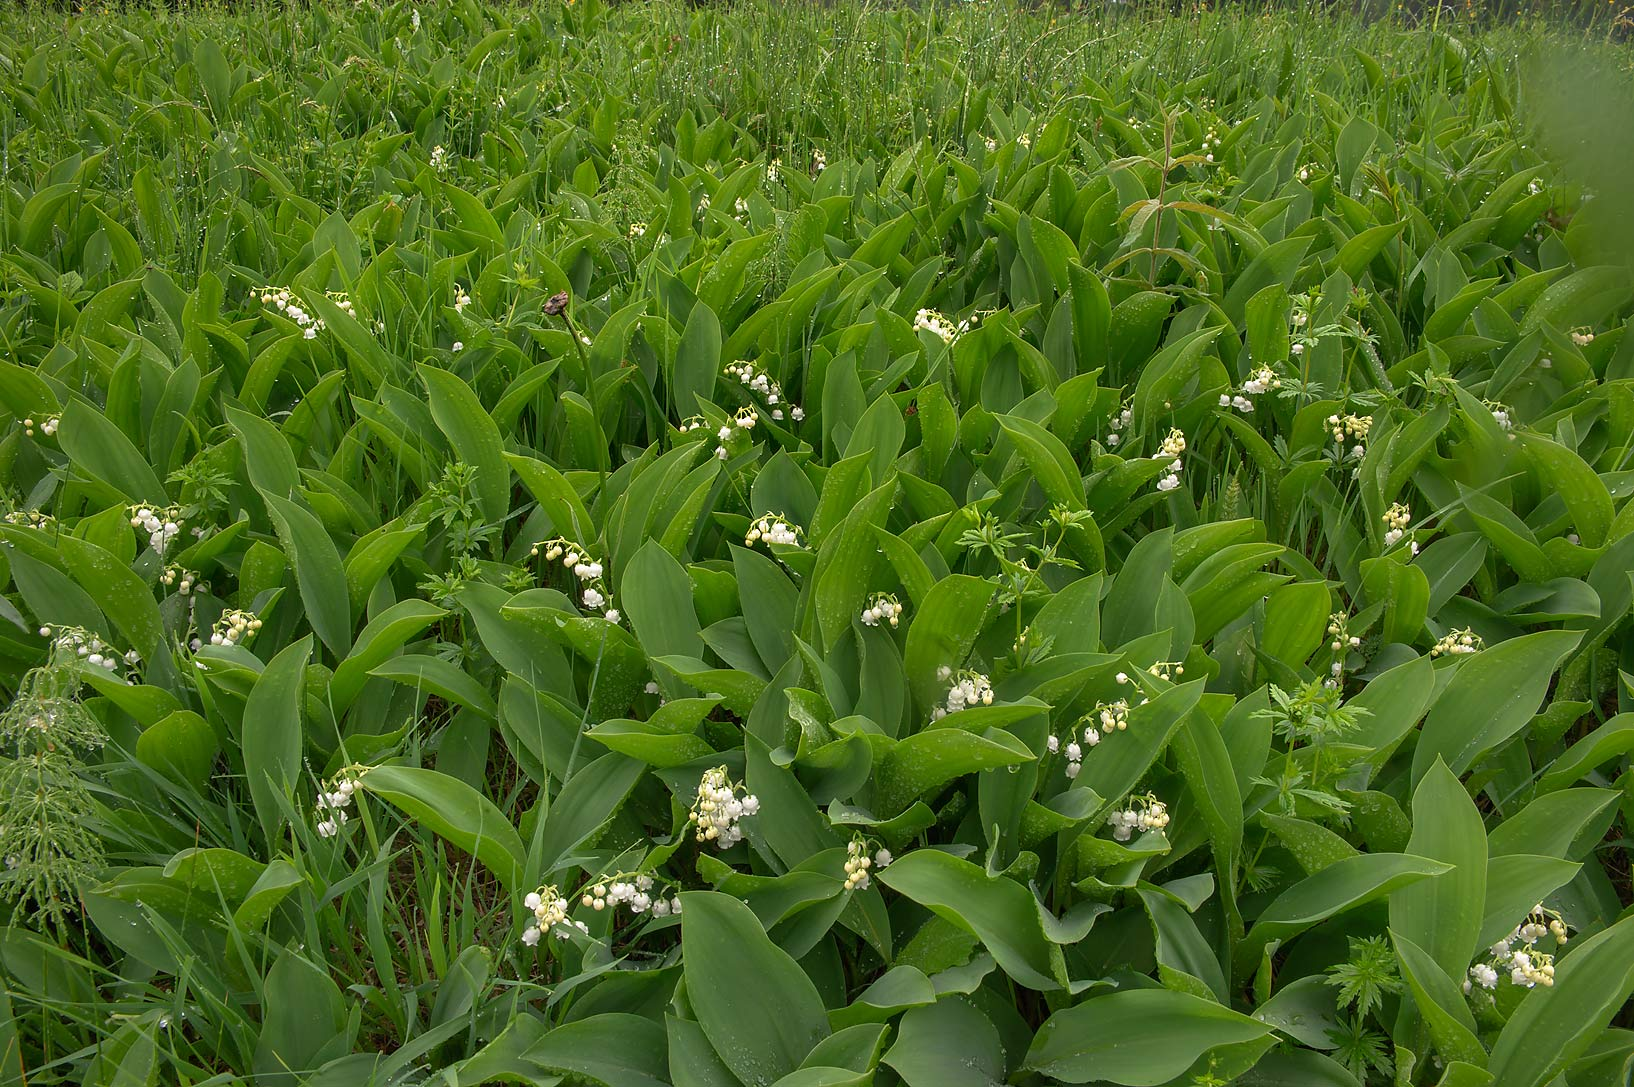 Blooming Lily of the Valley (Convallaria majalis...suburb of St.Petersburg, Russia